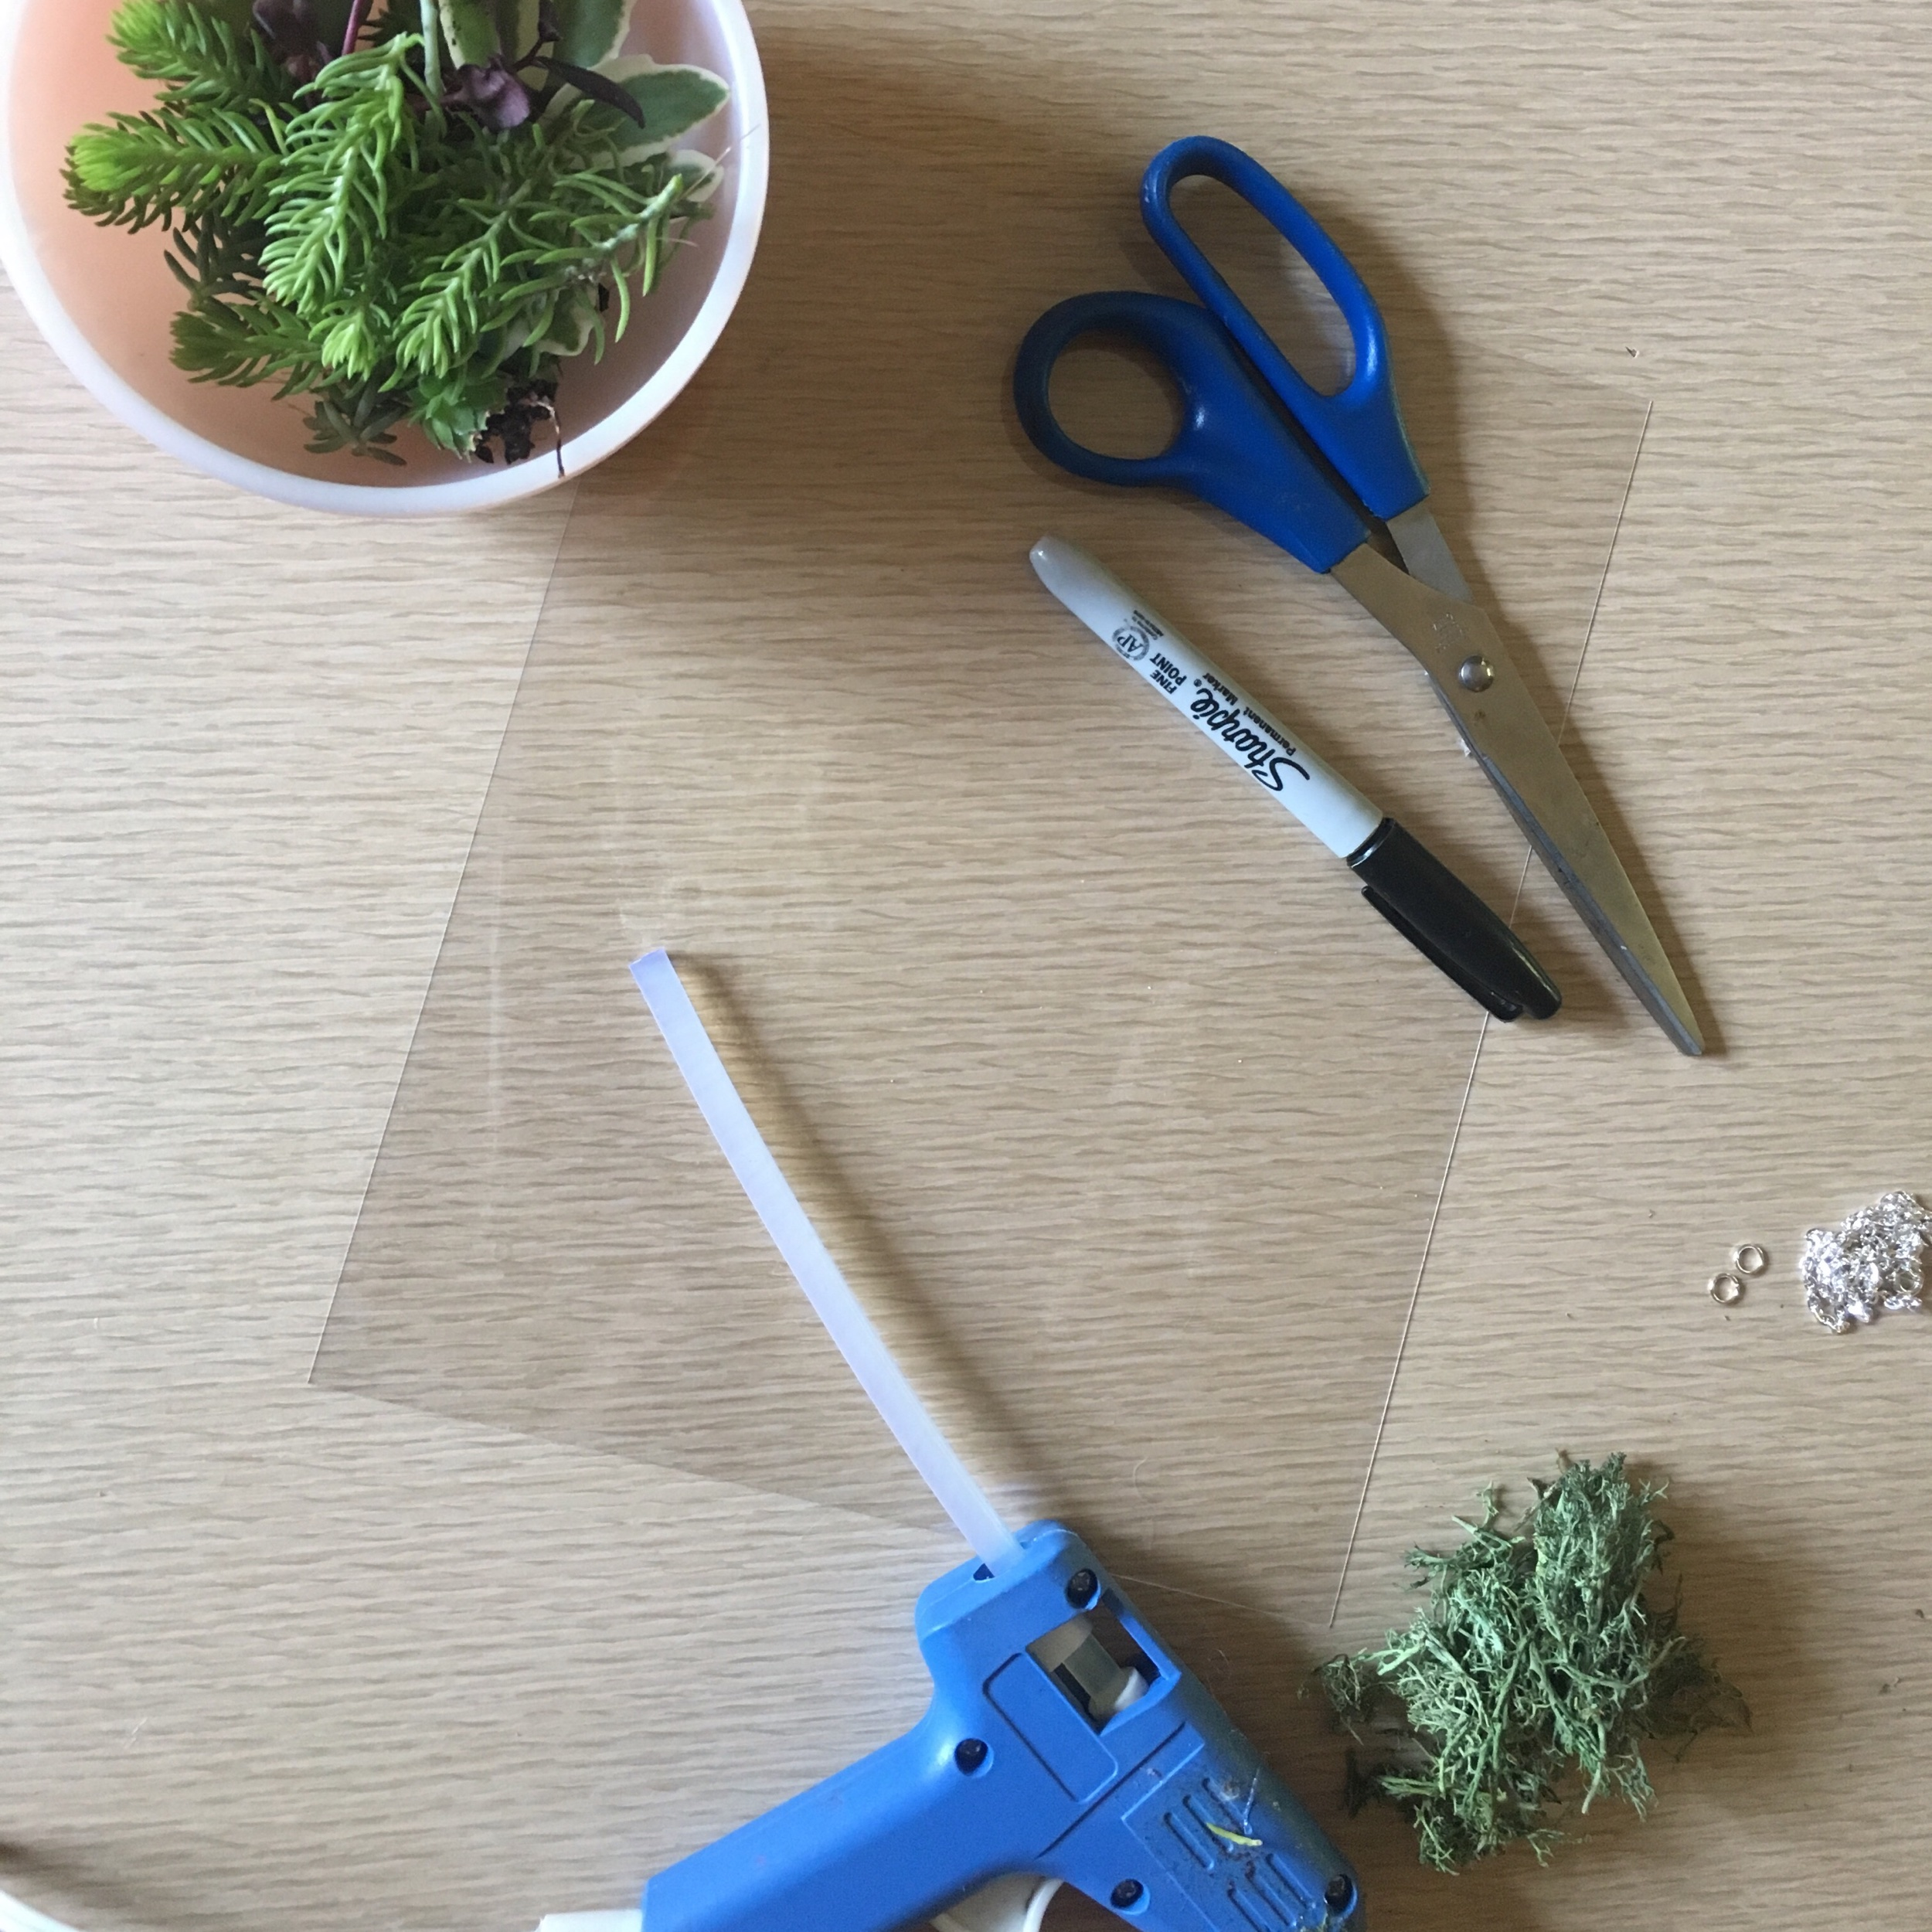 Step two: gather or purchase this stuff- some reindeer moss (or other preserved moss), a chain and closure, jump rings, a piece of shrink film, scissors, a sharpie and a hot glue gun (with glue). You will also need a hole punch, needle nose pliers, oven and baking tray of some kind. Preferably vintage Jadeite but IDK.  I also really like to add little crystals or fancy stones, but not today.